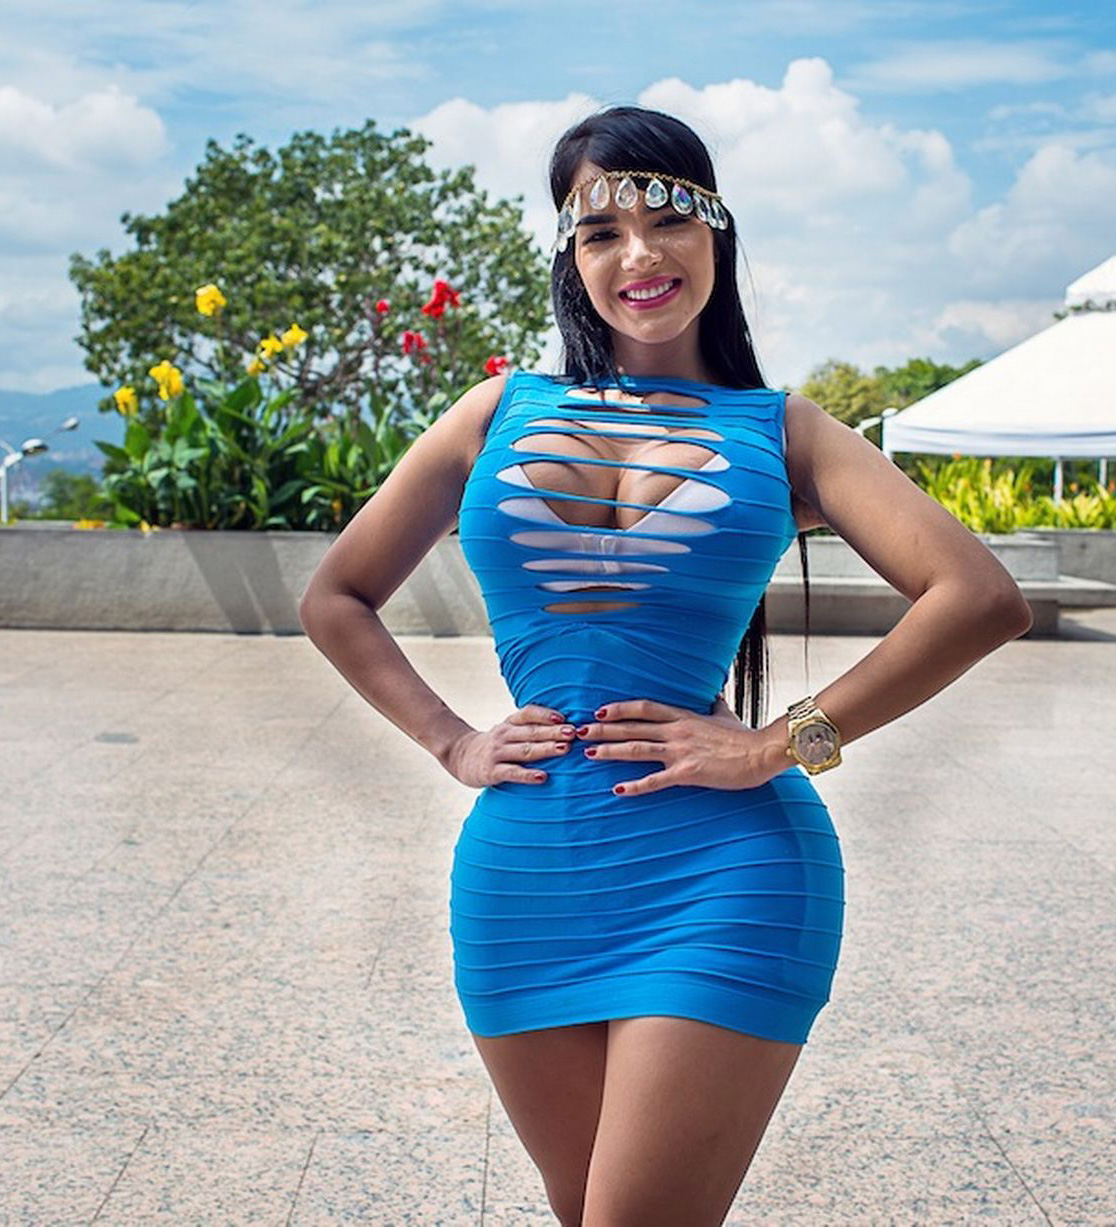 maracaibo milf women Maracaibo's best 100% free online dating site meet loads of available single women in maracaibo with mingle2's maracaibo dating services find a girlfriend or lover in maracaibo, or just have fun flirting online with maracaibo single girls.